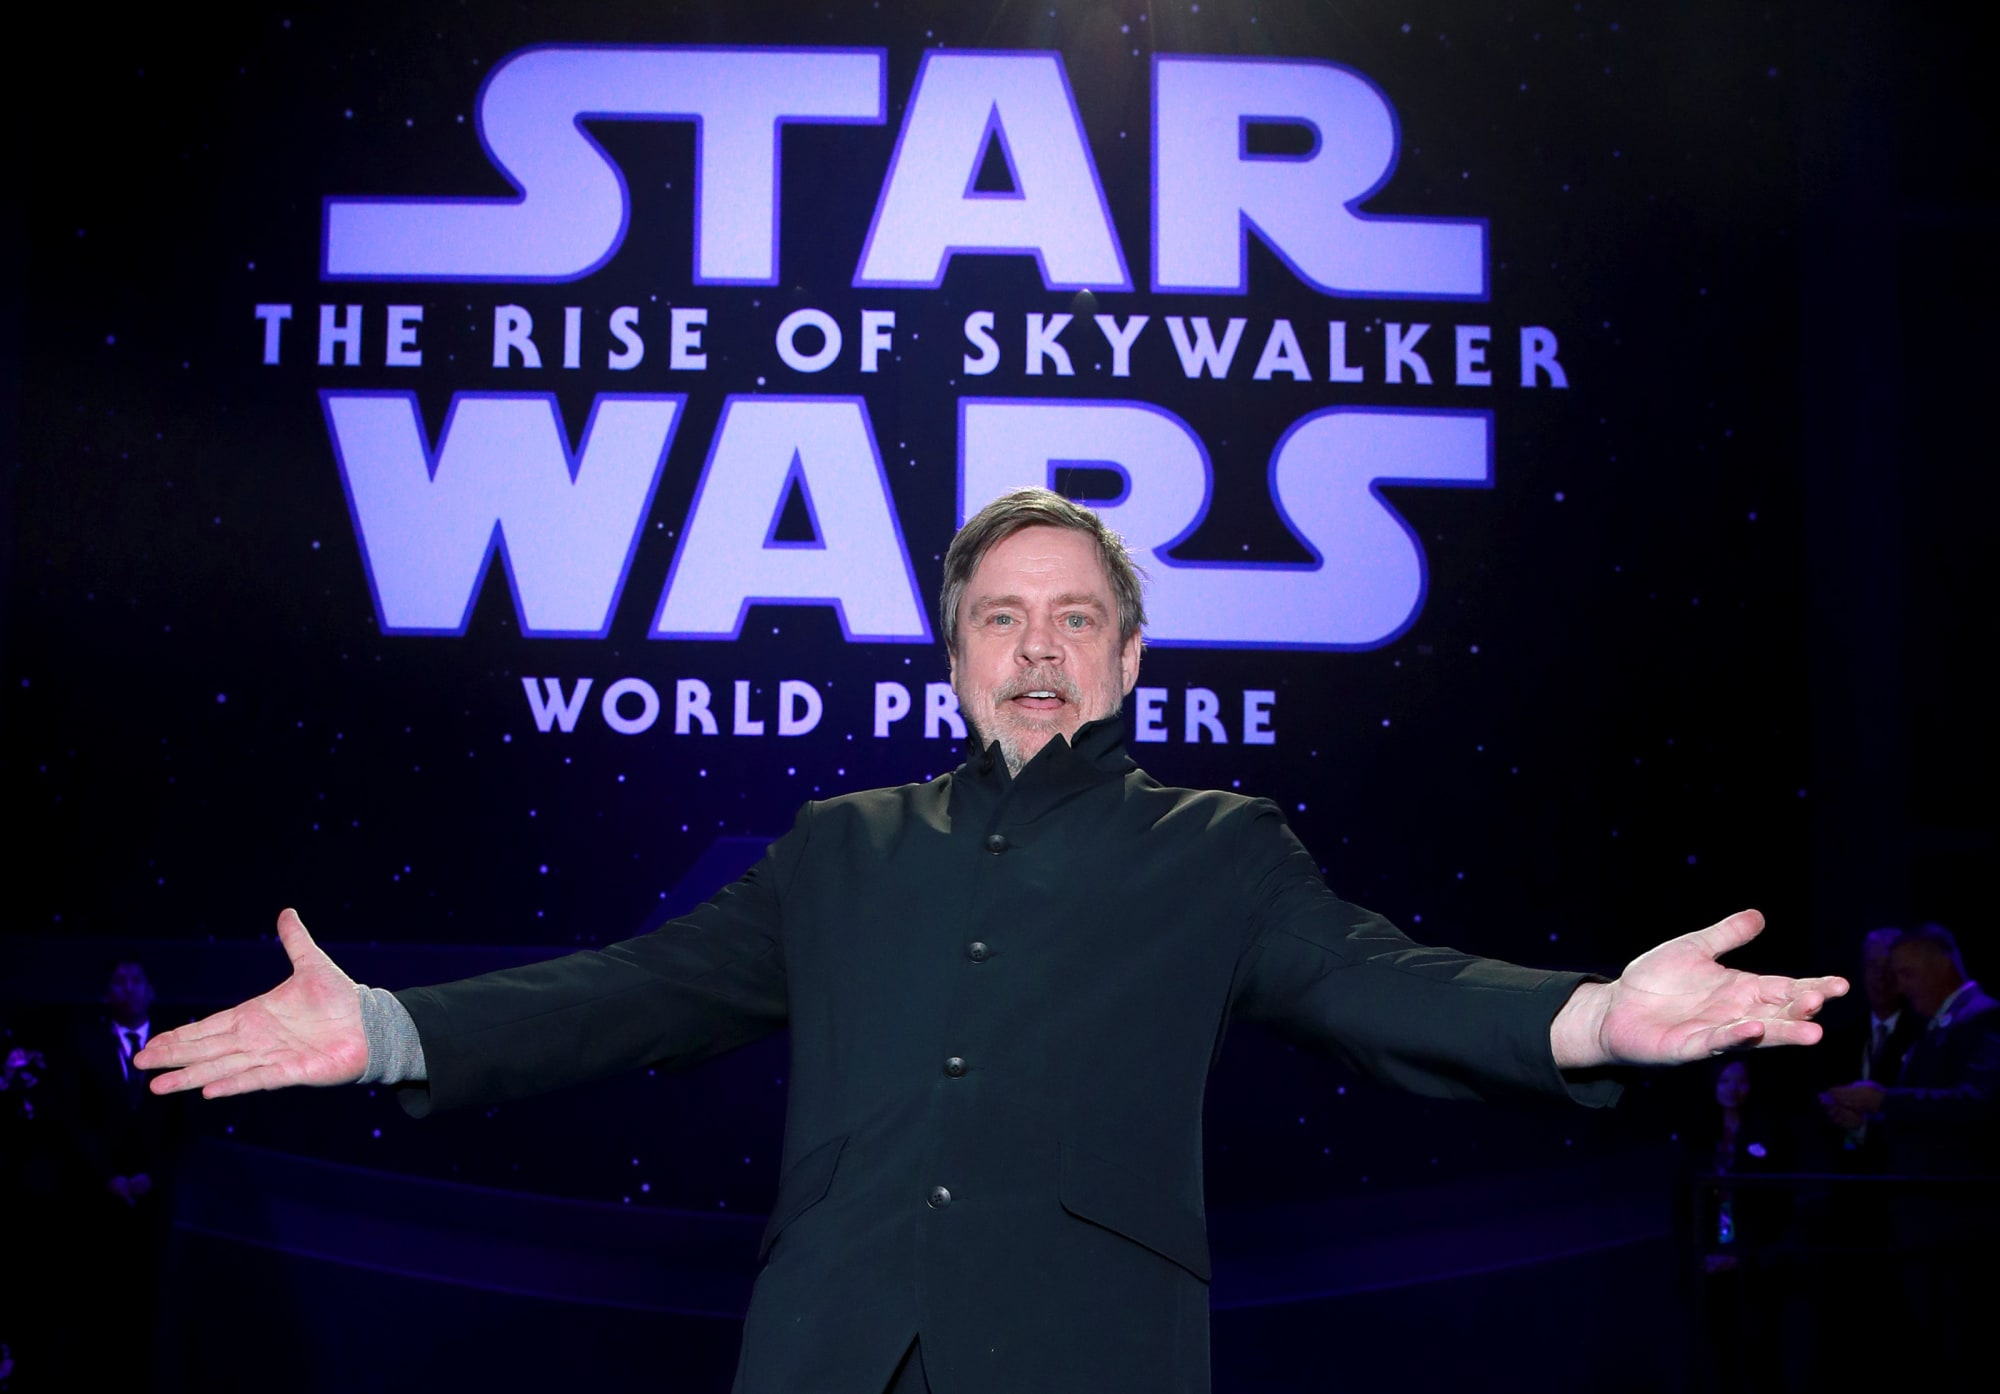 5 little-known facts about Star Wars actor Mark Hamill